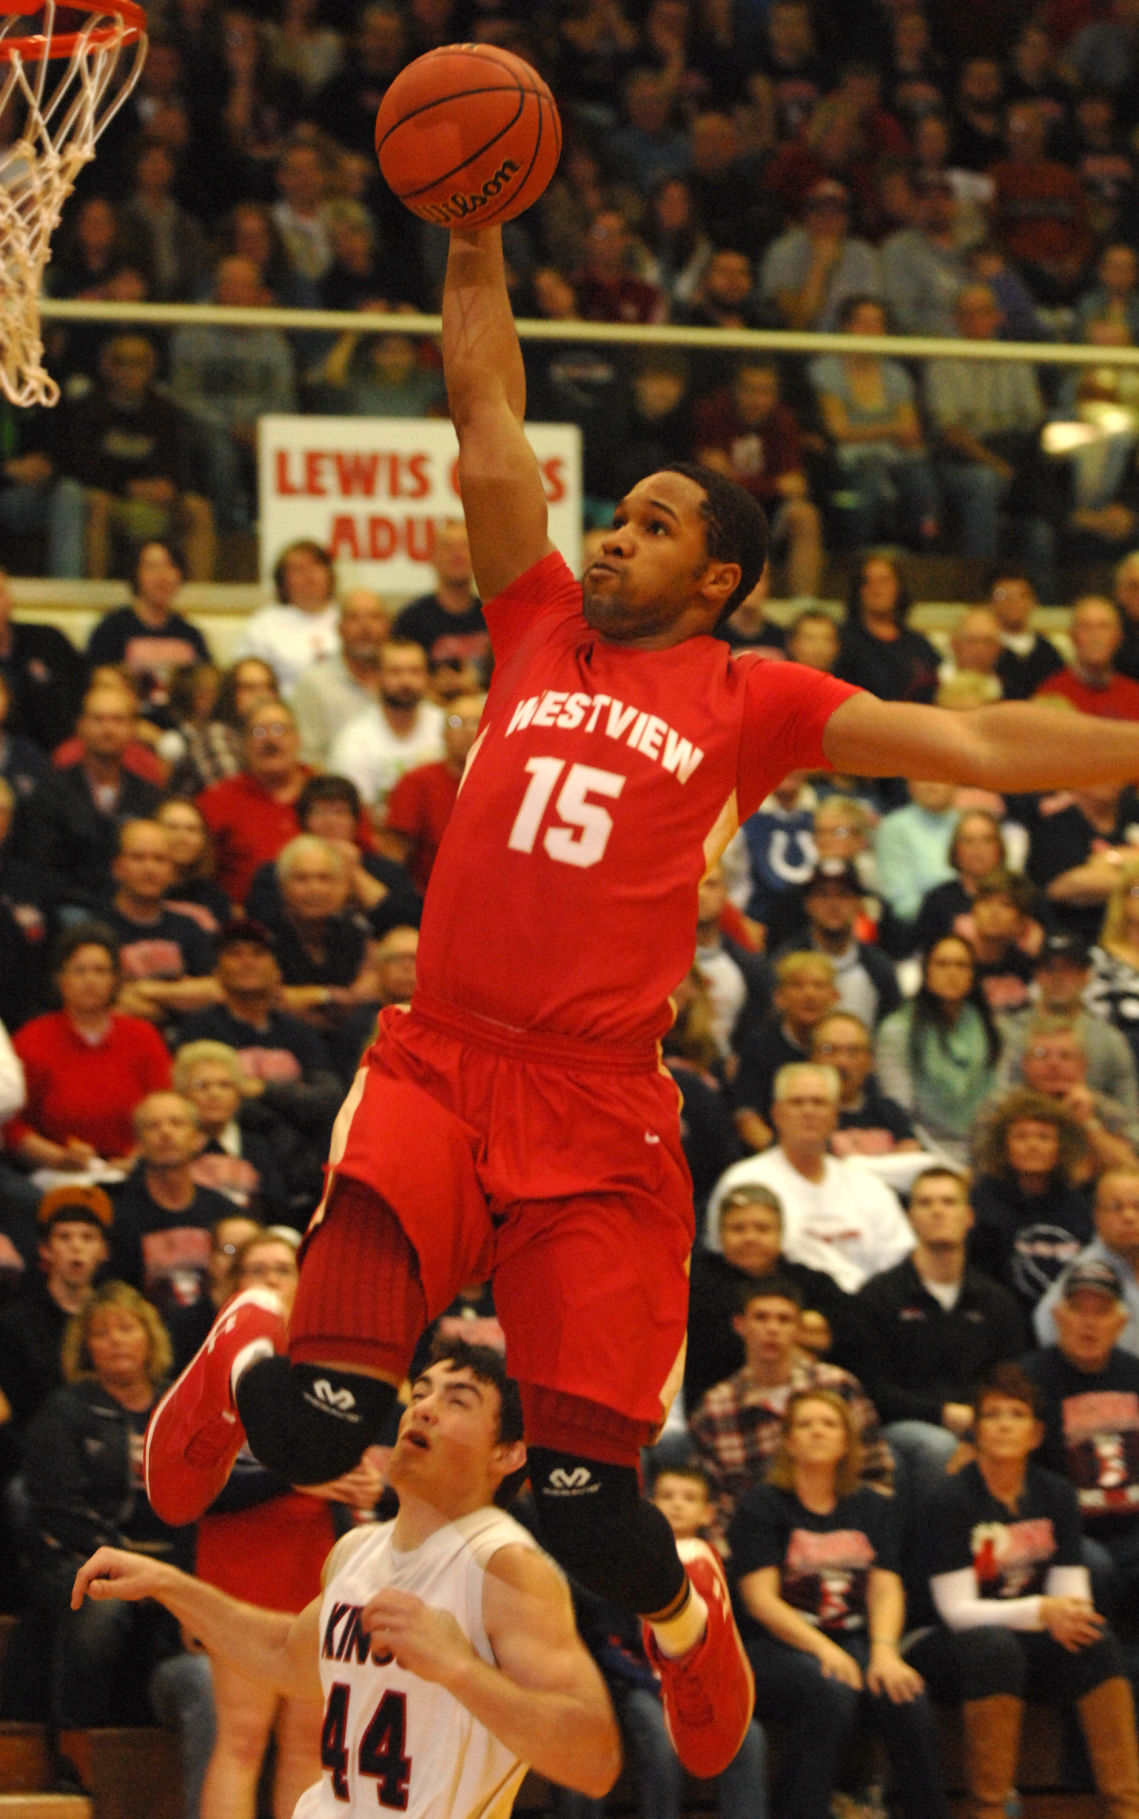 Westview faces Park Tudor for 2A crown this weekend